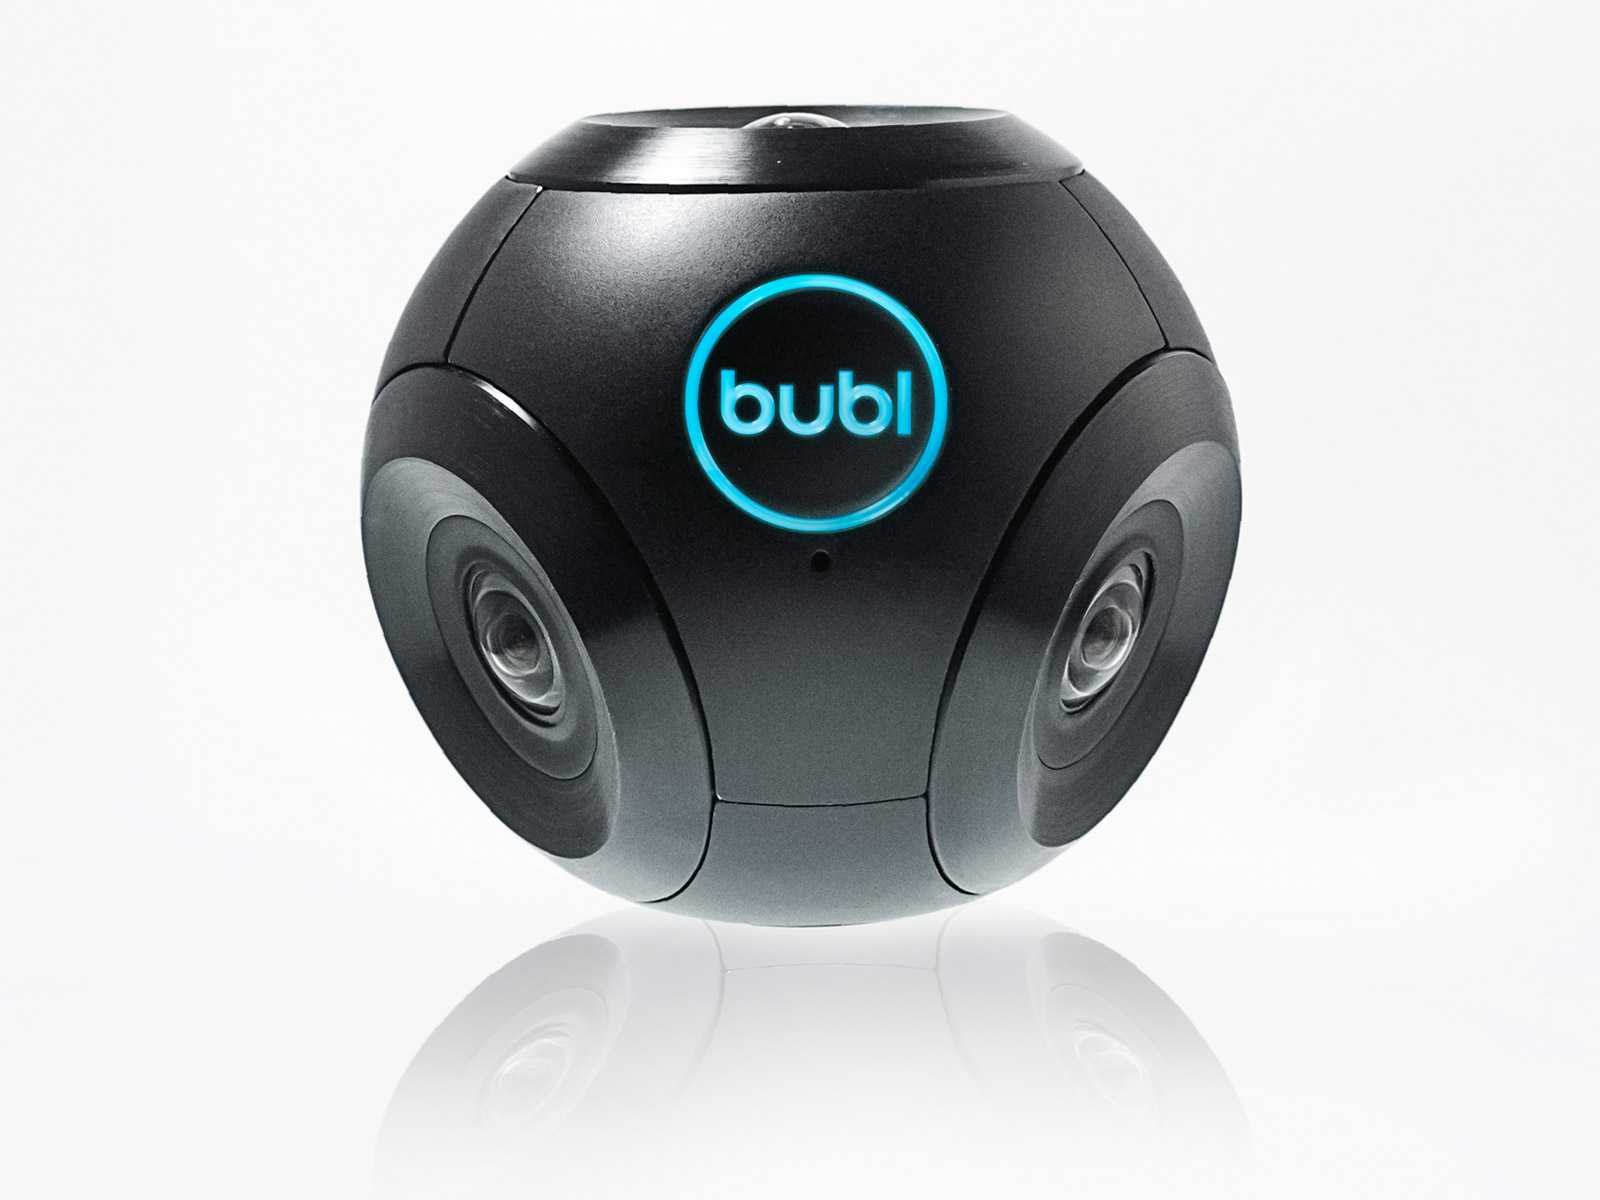 The Bublcam